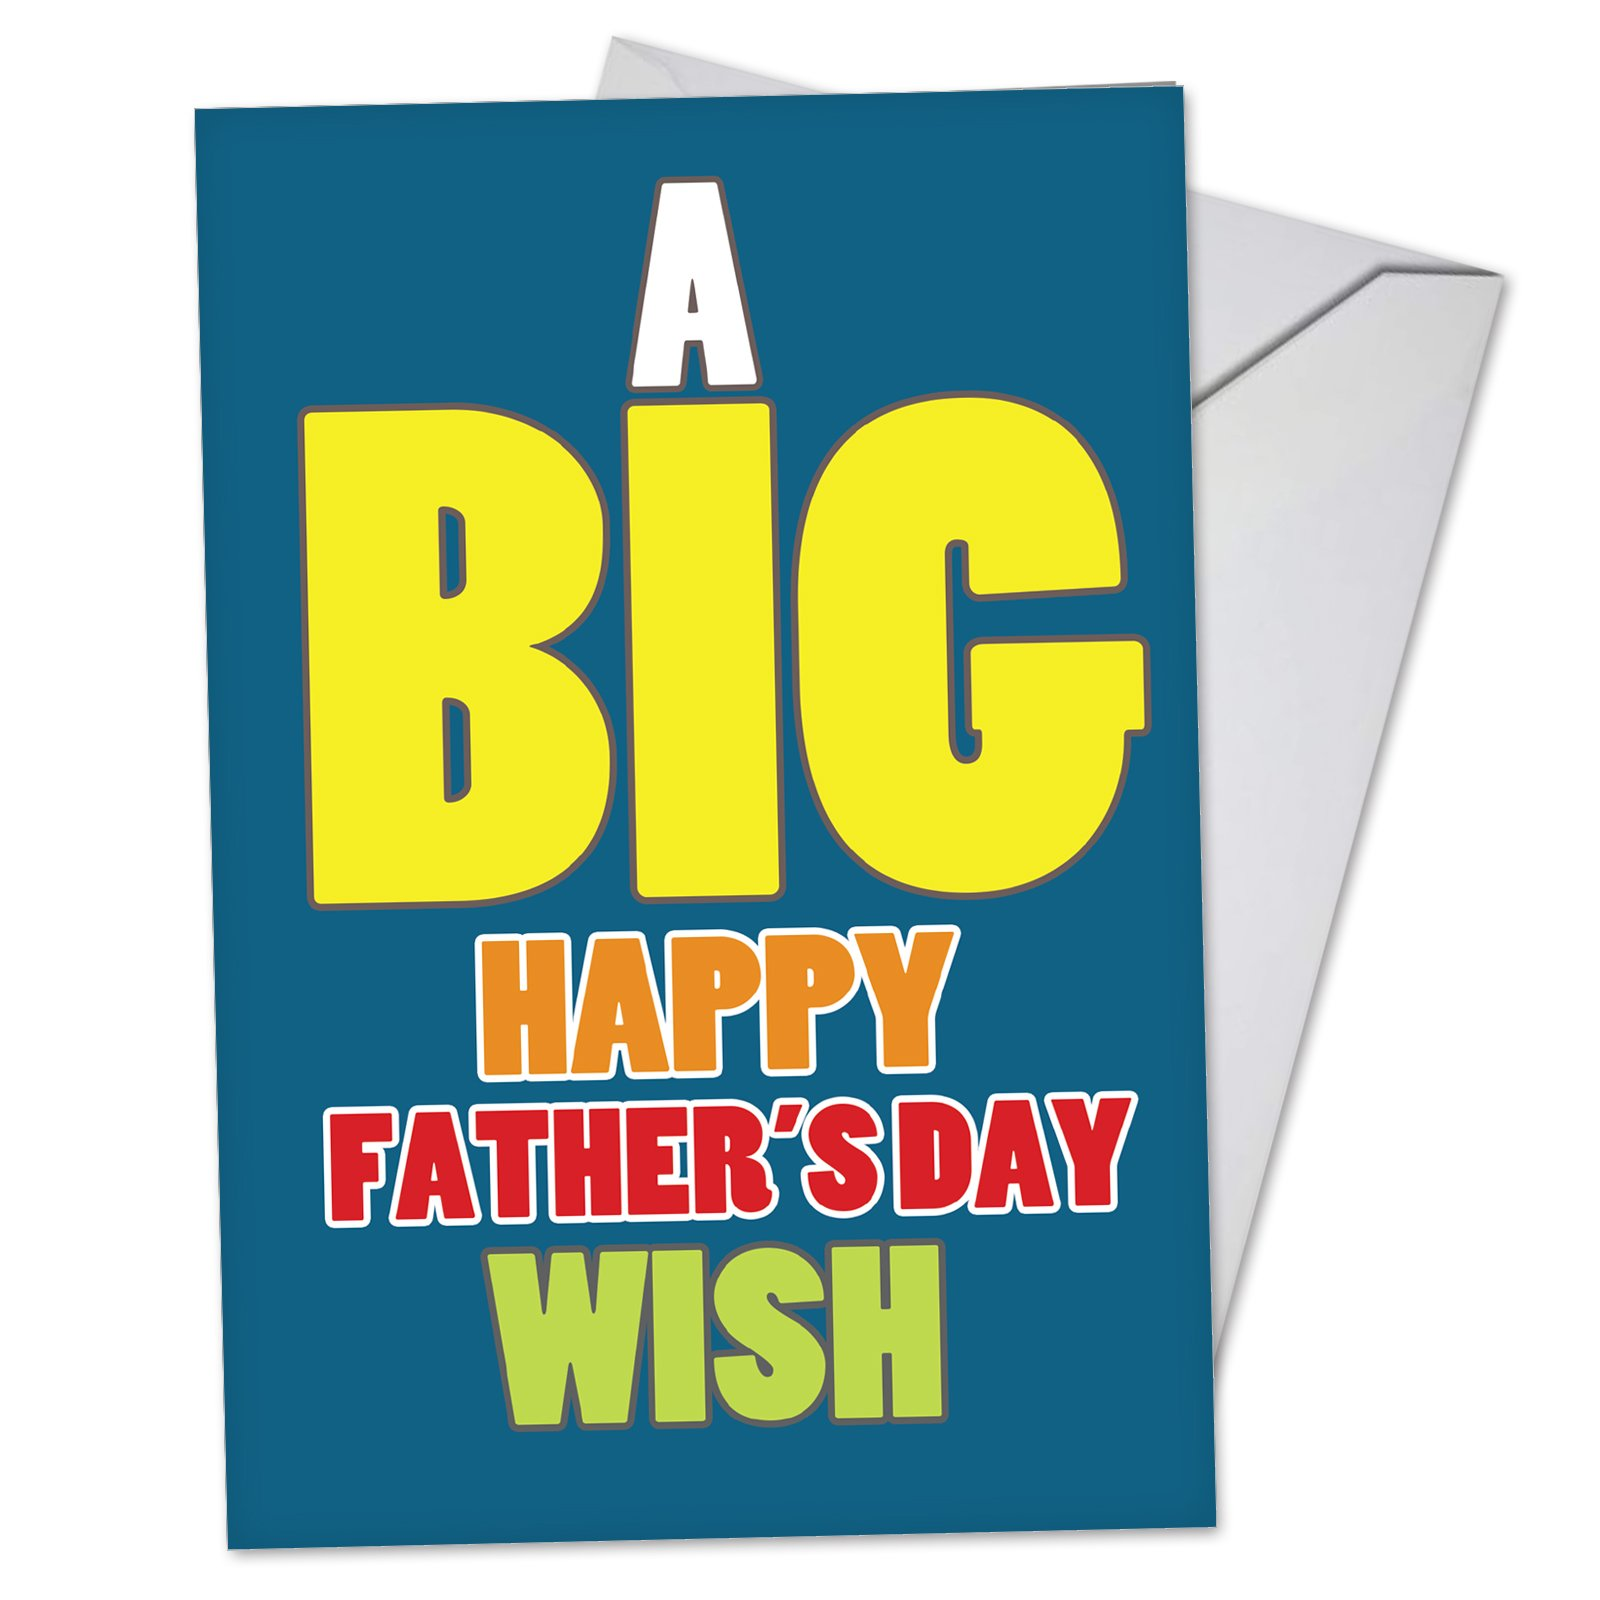 Big Father's Day Wish - Colorful Fathers Day Note Card with Envelope (4.63 x 6.75 Inch) - Bold and Bright Fathers Day Gift for Dad - Fun Stationery Greeting Notecard for Papa, Stepdad C3456FDG